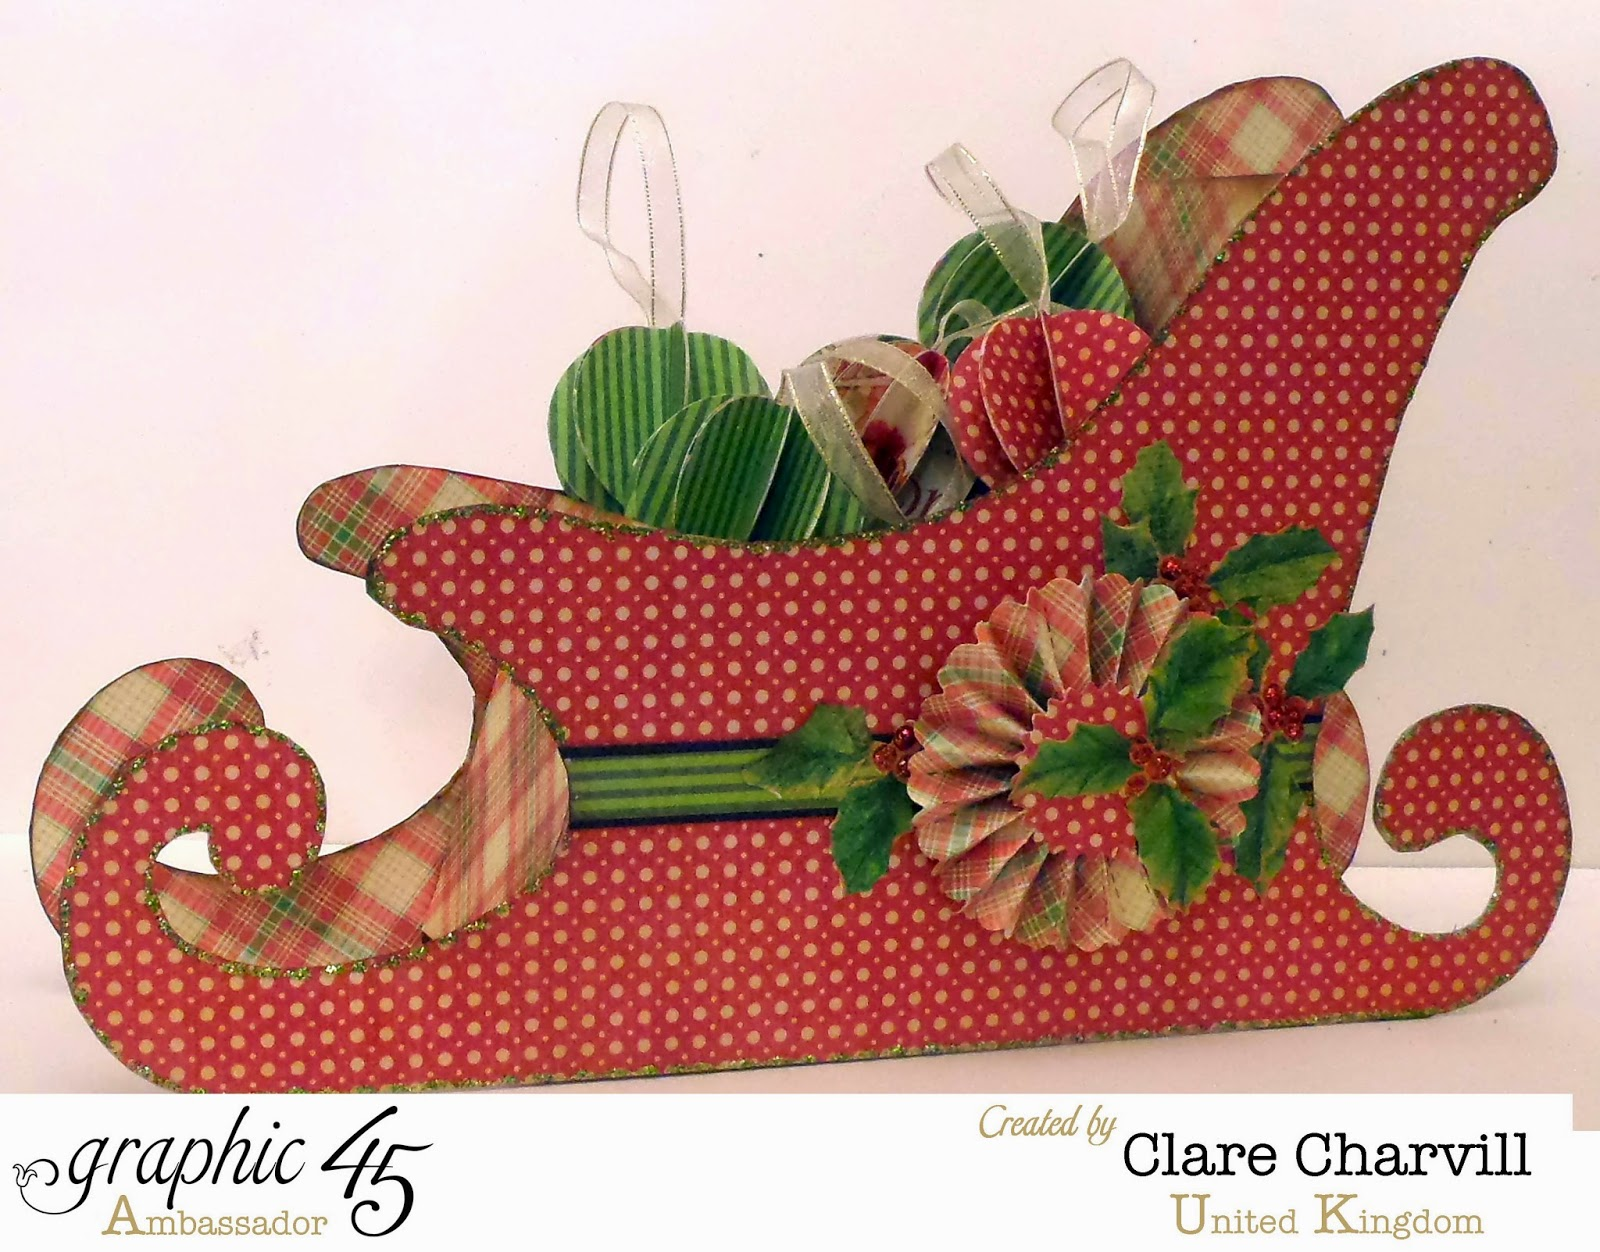 Twas the Night Before Christmas Sleigh altered by Clare Charvill Template from the House of Zandra